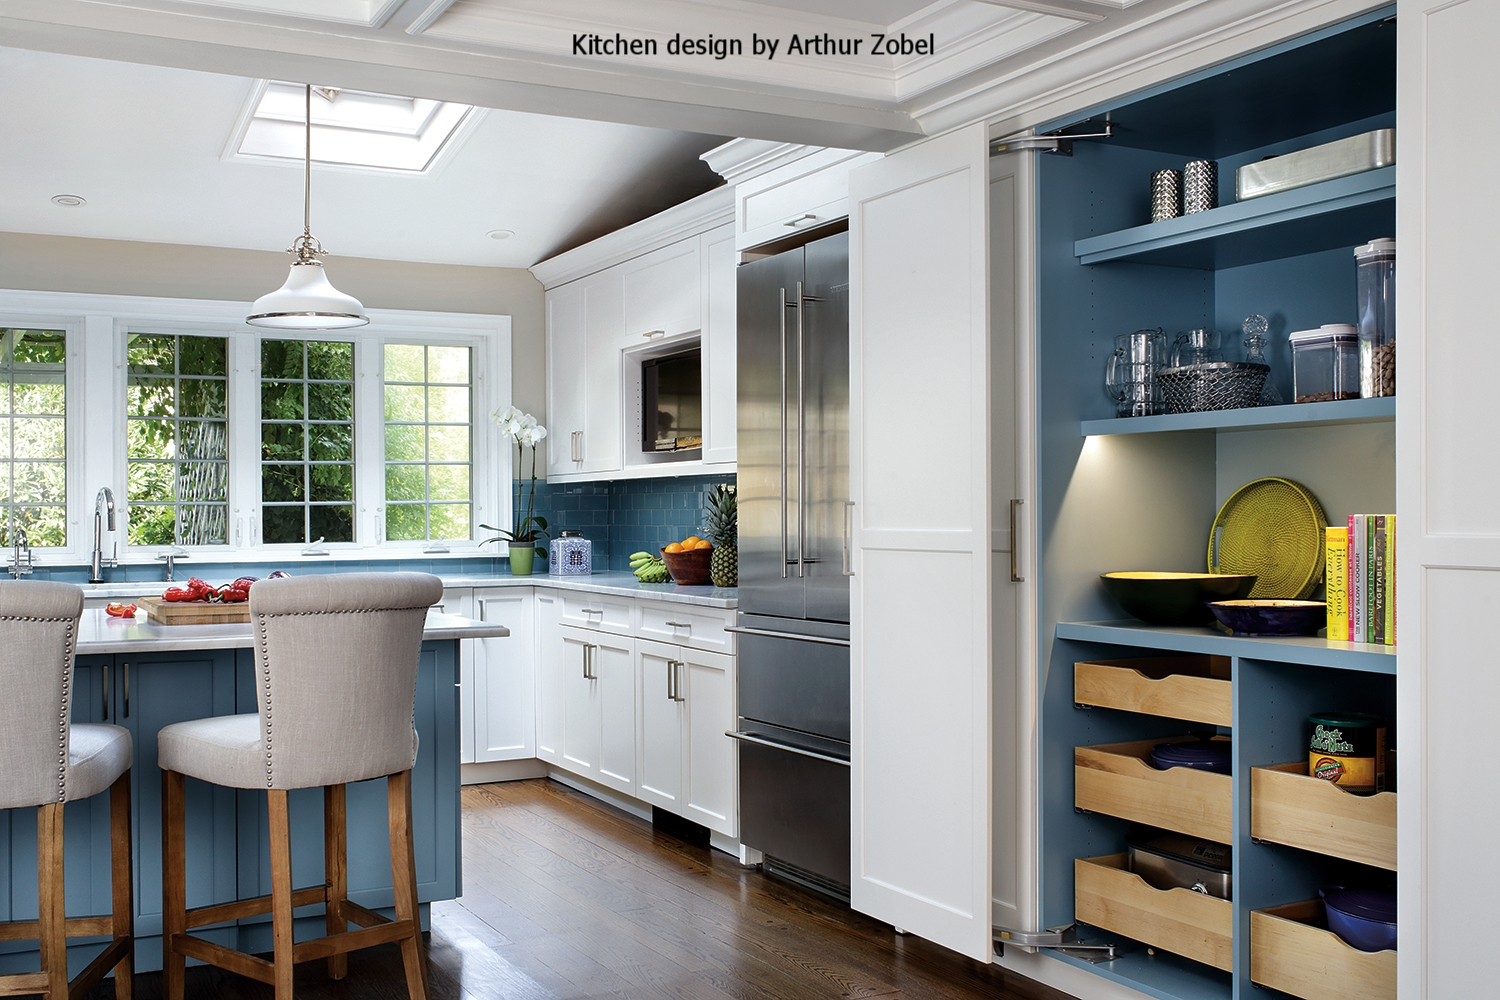 C12350_Plain&FancyPelhamKitchenFullPantryCloset_119_low.jpg